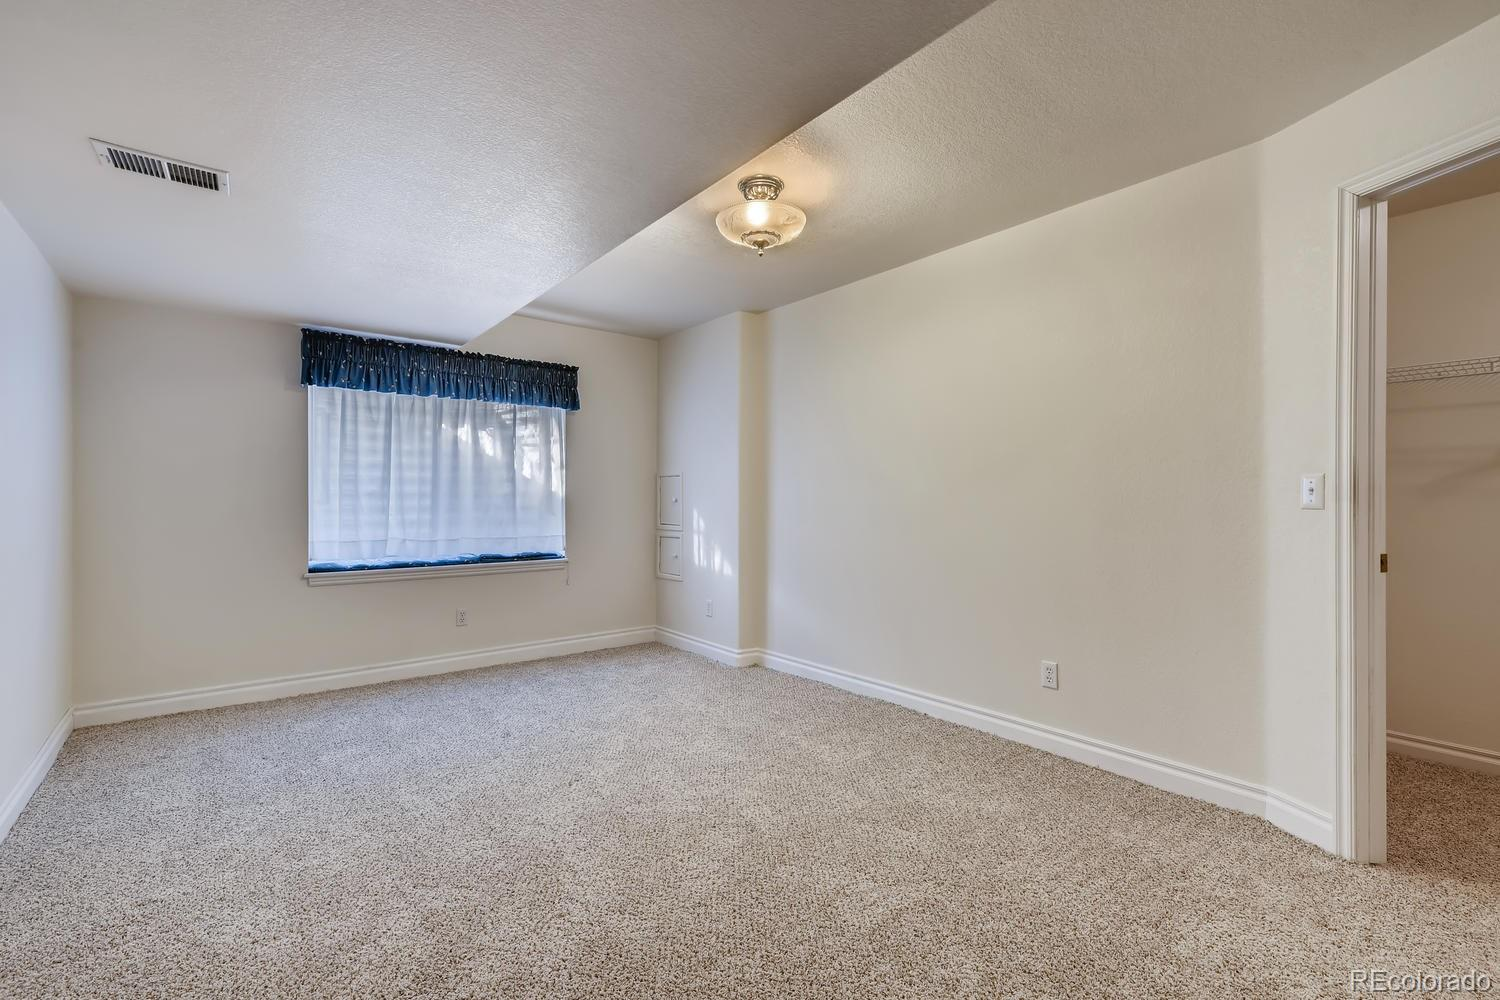 MLS# 6189939 - 12 - 7400 W Grant Ranch Boulevard #49, Littleton, CO 80123